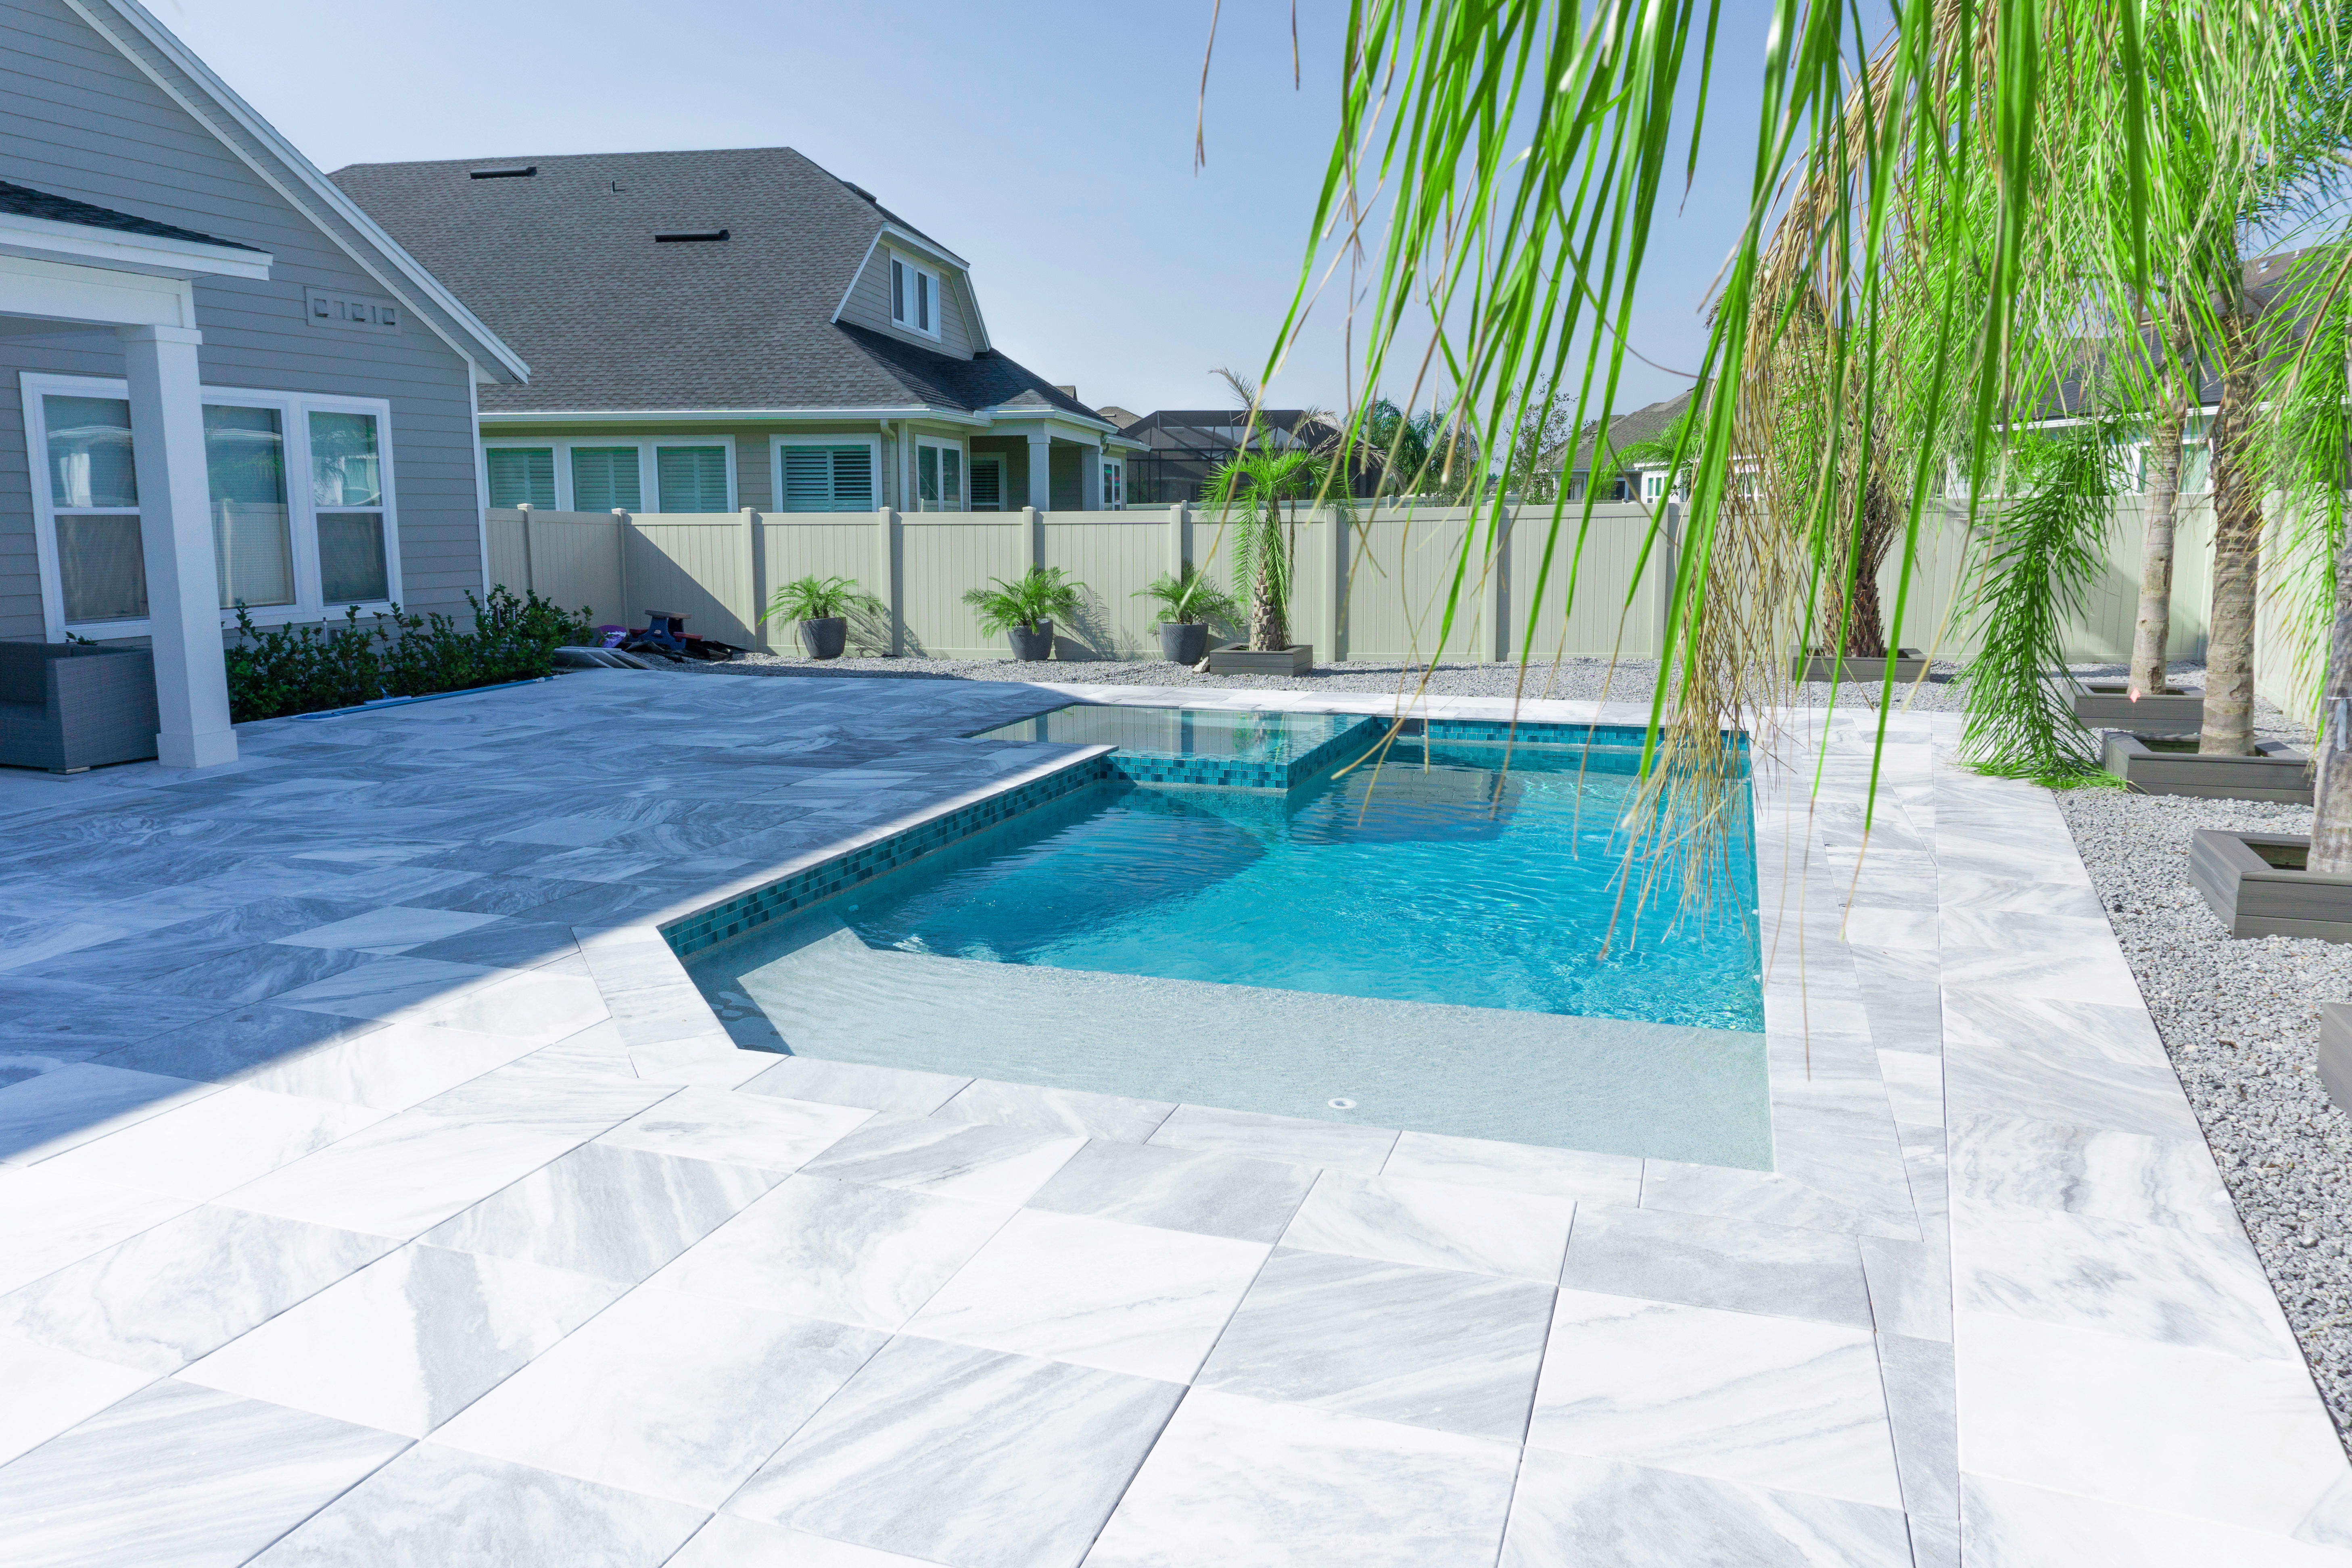 Florida Luxury Pools image 3